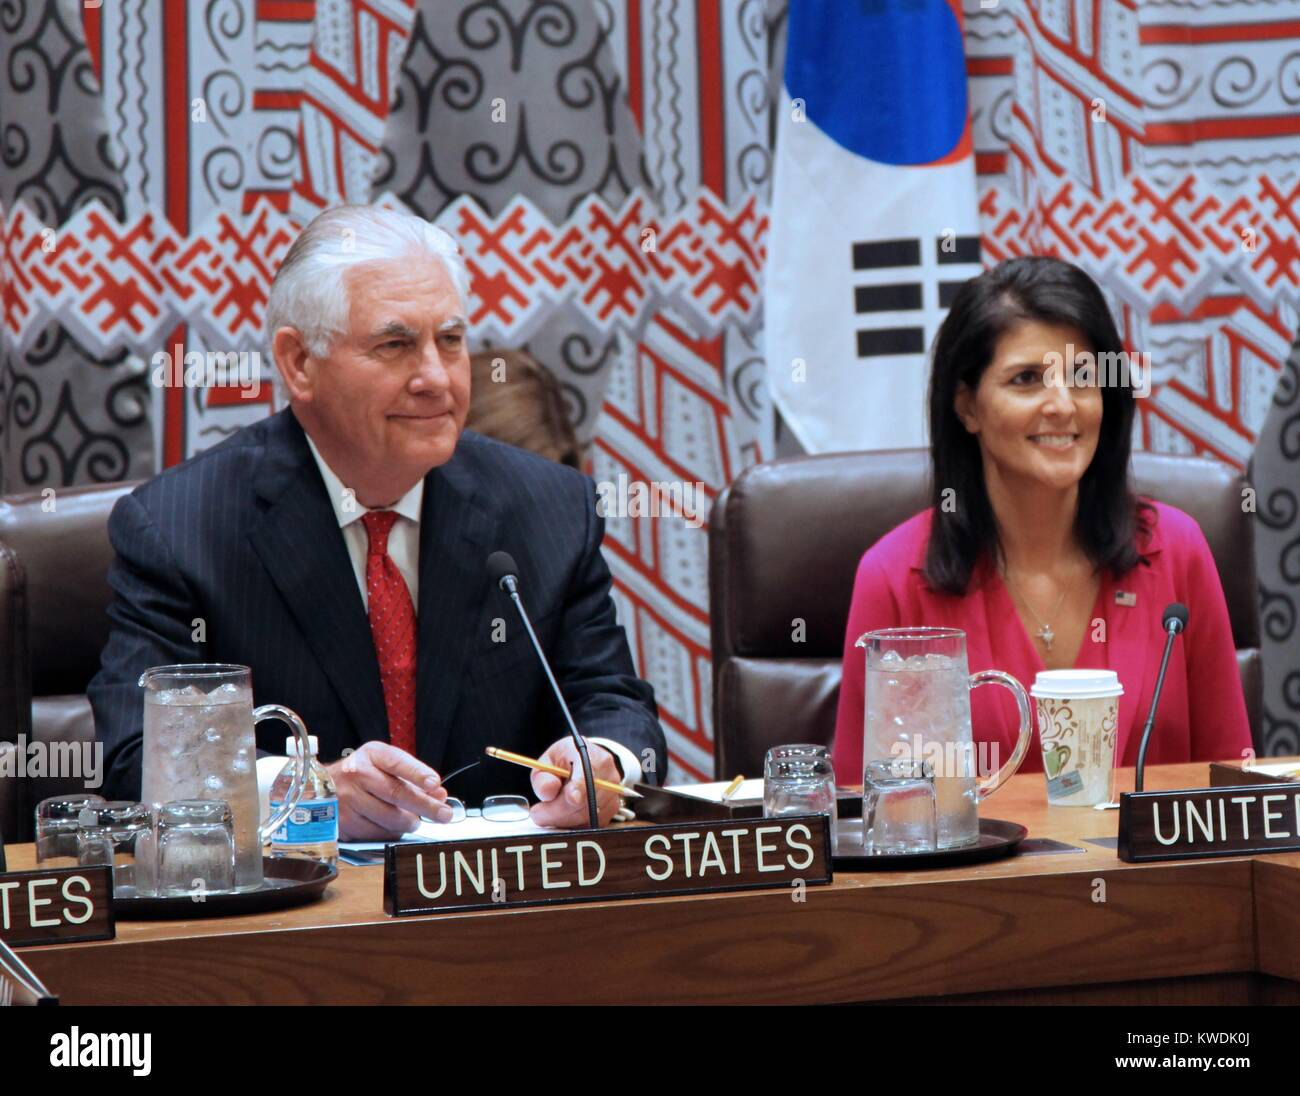 US Secretary Tillerson and UN Ambassador Nikki Haley meet with East Asian allies, April 28, 2017. At the United - Stock Image